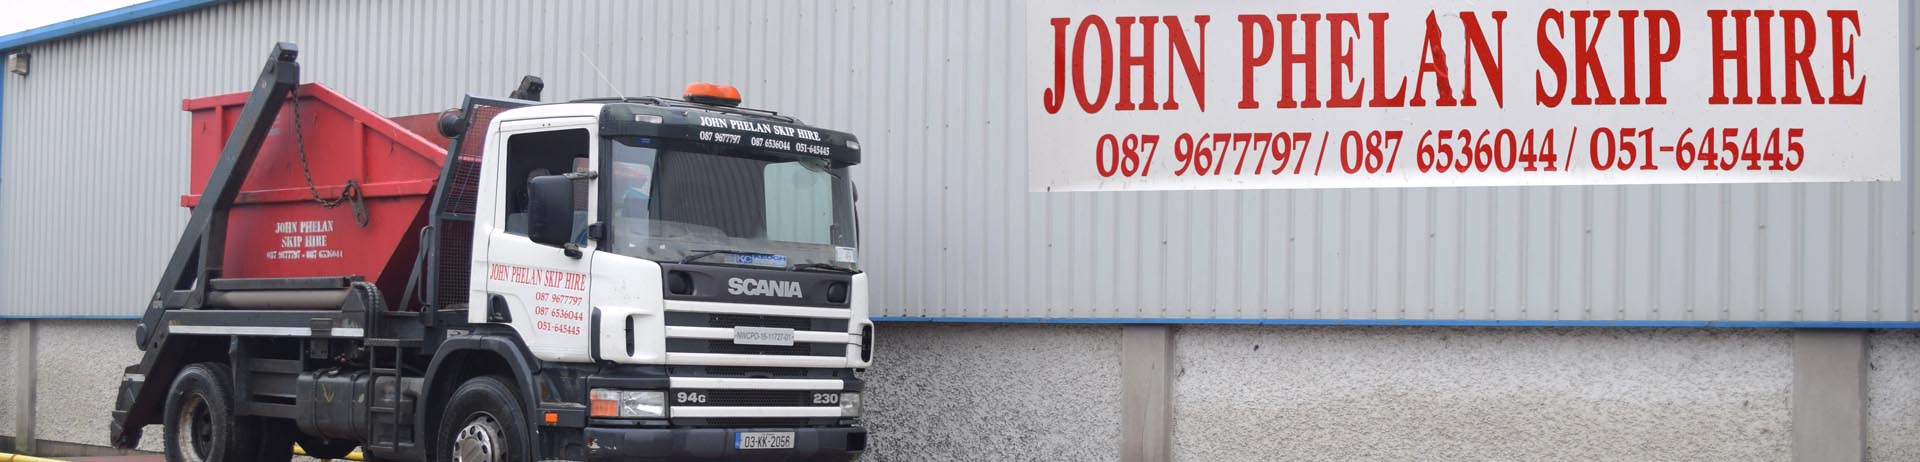 skip hire in tipperary